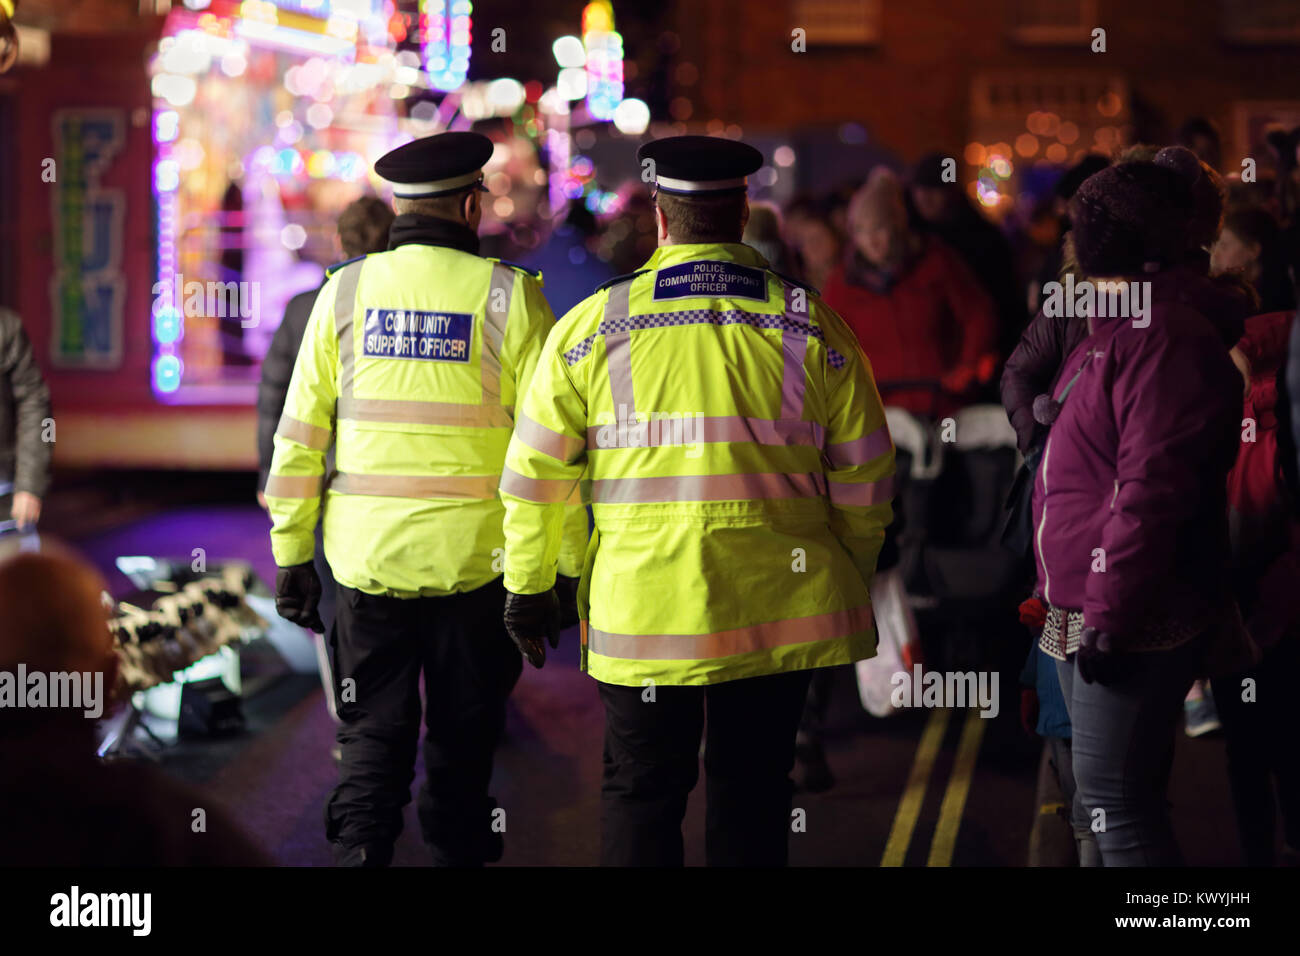 Police in hi-visibility jackets policing crowd control at a UK event - Stock Image